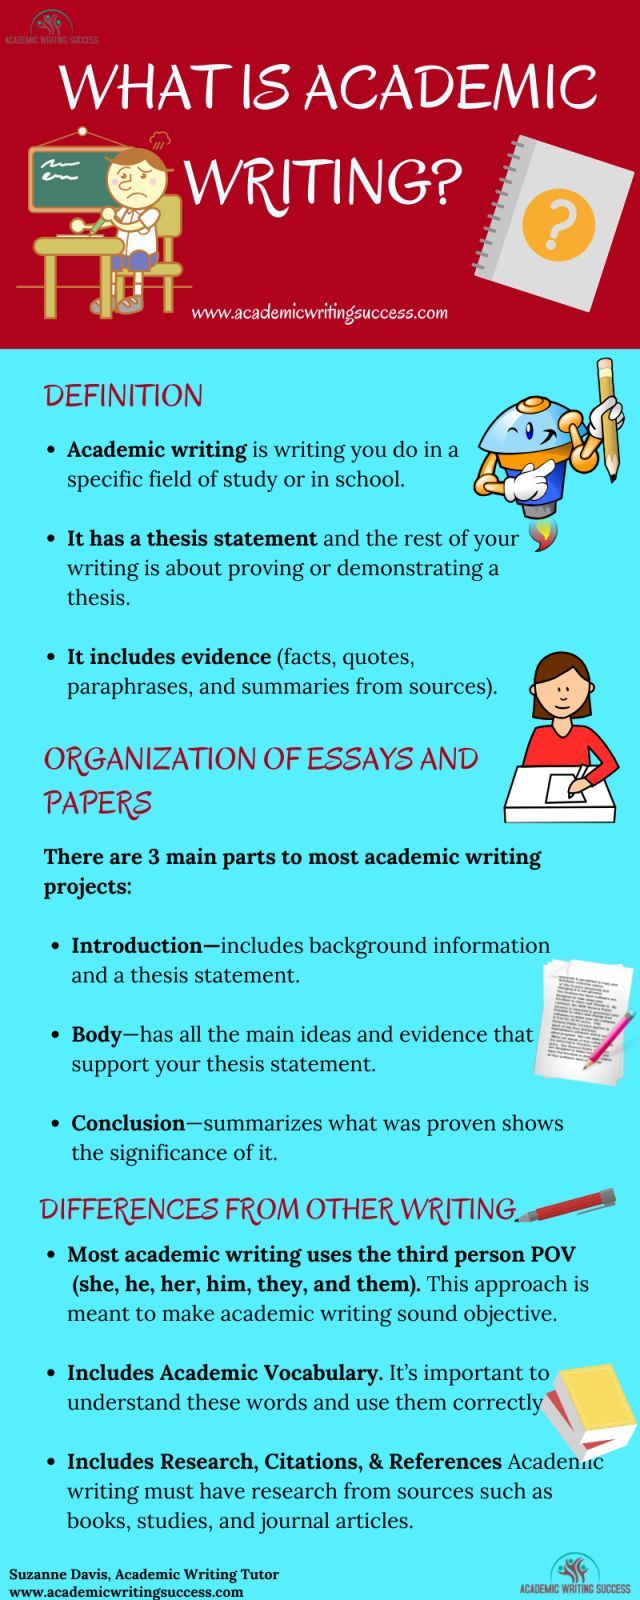 What Is Academic Writing What You Need To Know Academic Writing Success Academic Writing Essay Writing Skills Essay Writing Help